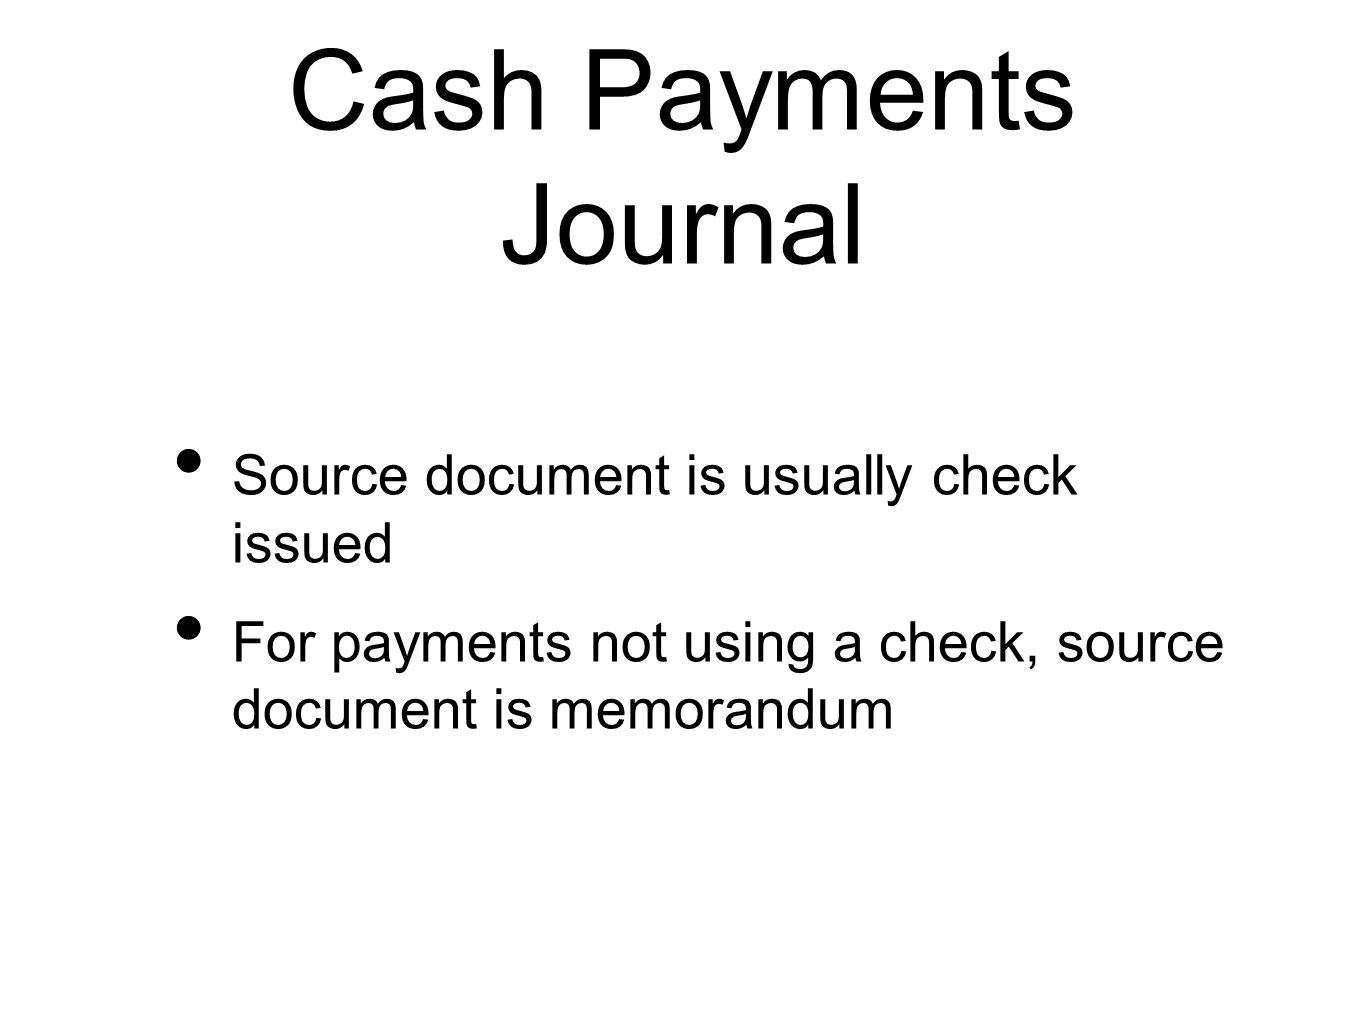 Cash Payments Journal Source document is usually check issued